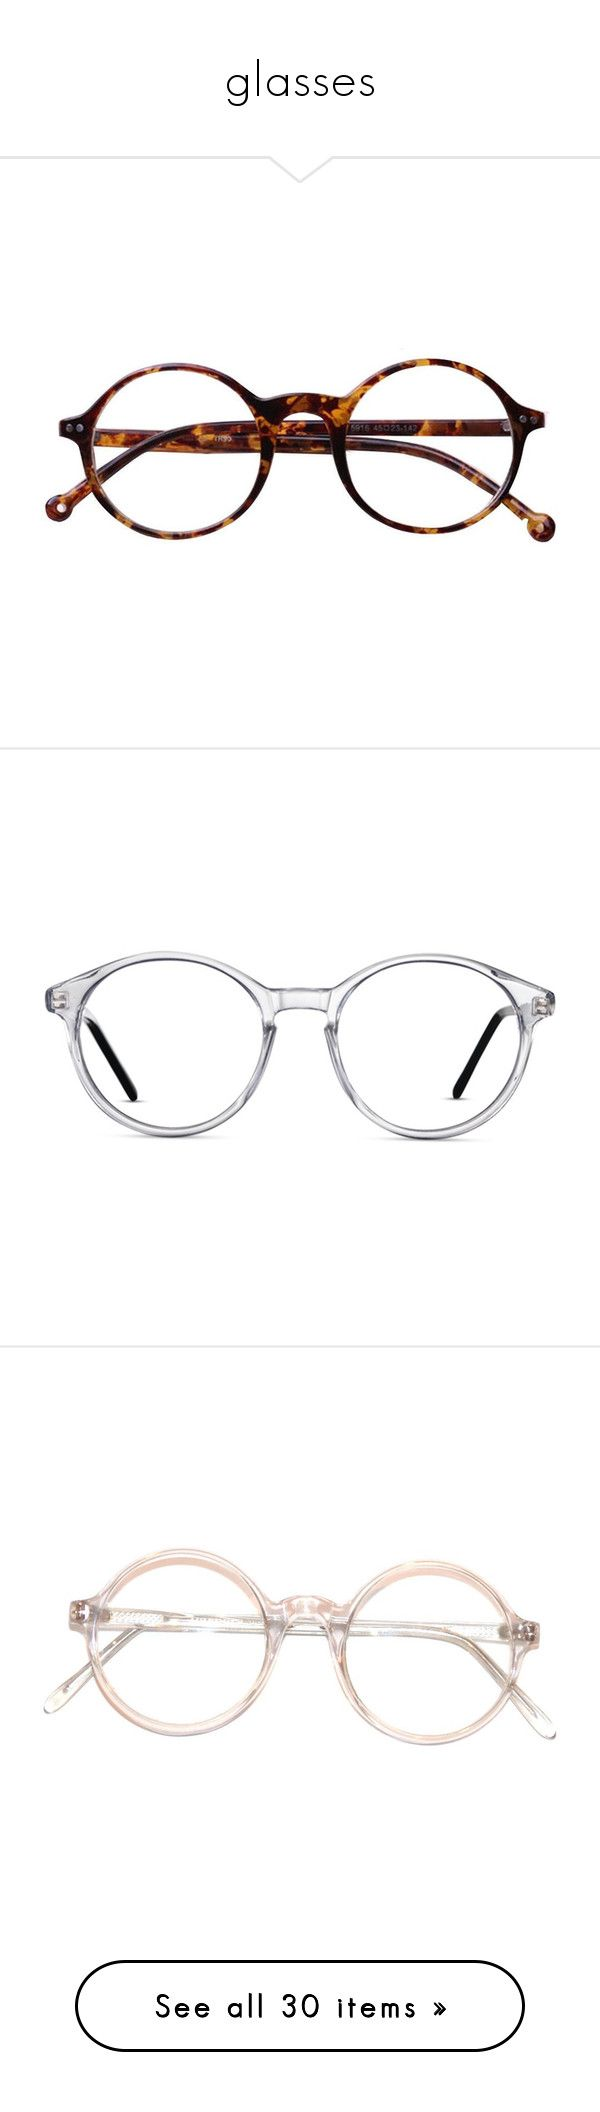 """""""glasses"""" by taxicabs ❤ liked on Polyvore featuring accessories, eyewear, eyeglasses, glasses, sunglasses, fillers, retro eye glasses, leopard glasses, vintage round eyeglasses and round eye glasses"""